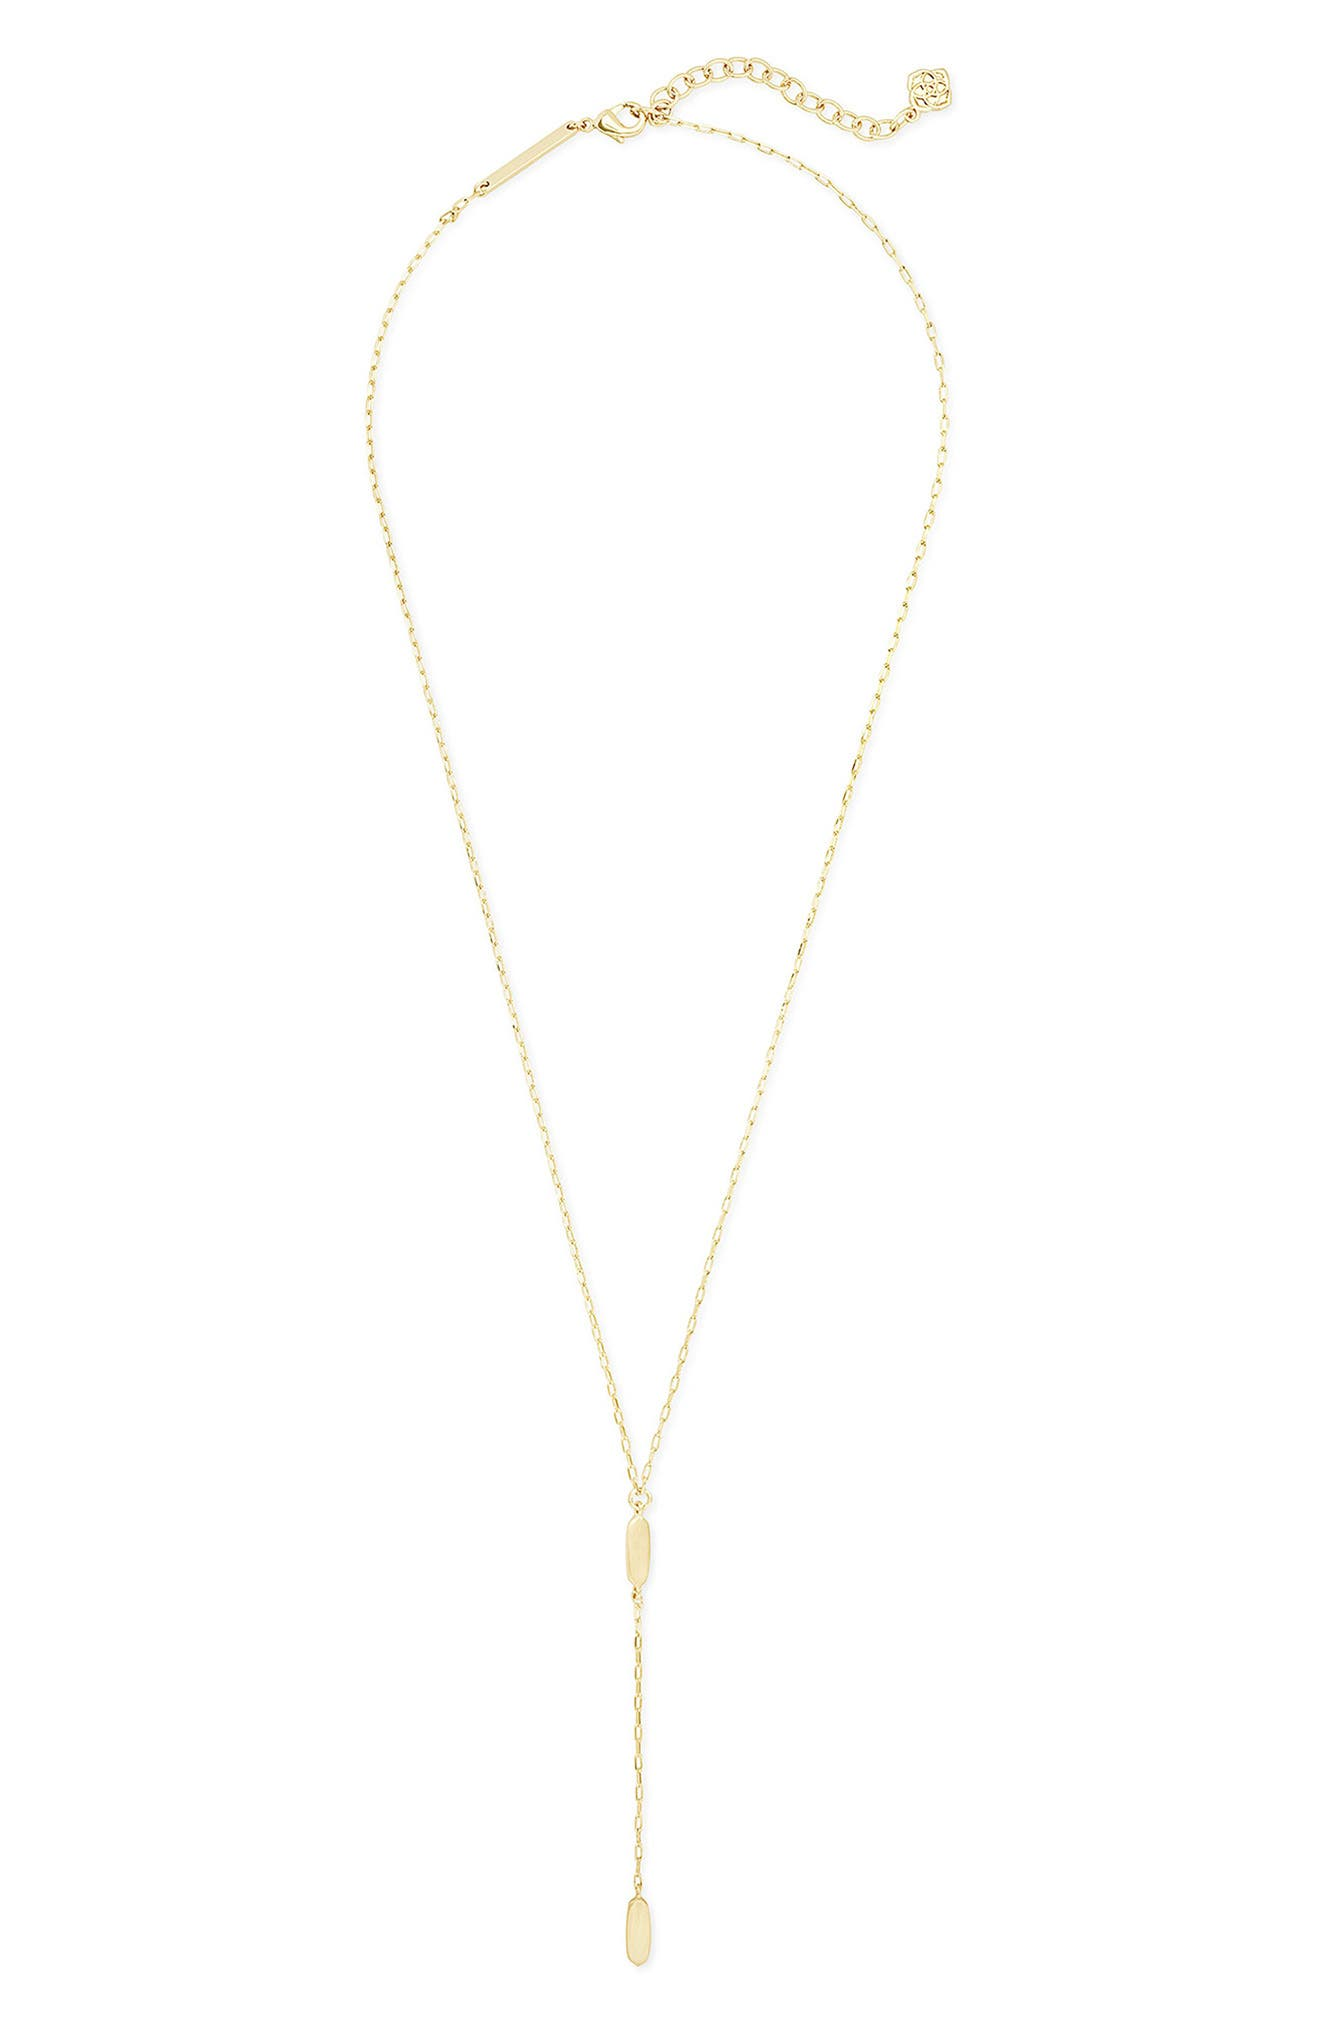 Y Necklace 925 Sterling Silver Cubic Zirconia Fish Bone and Cat Ear Charm Lariat